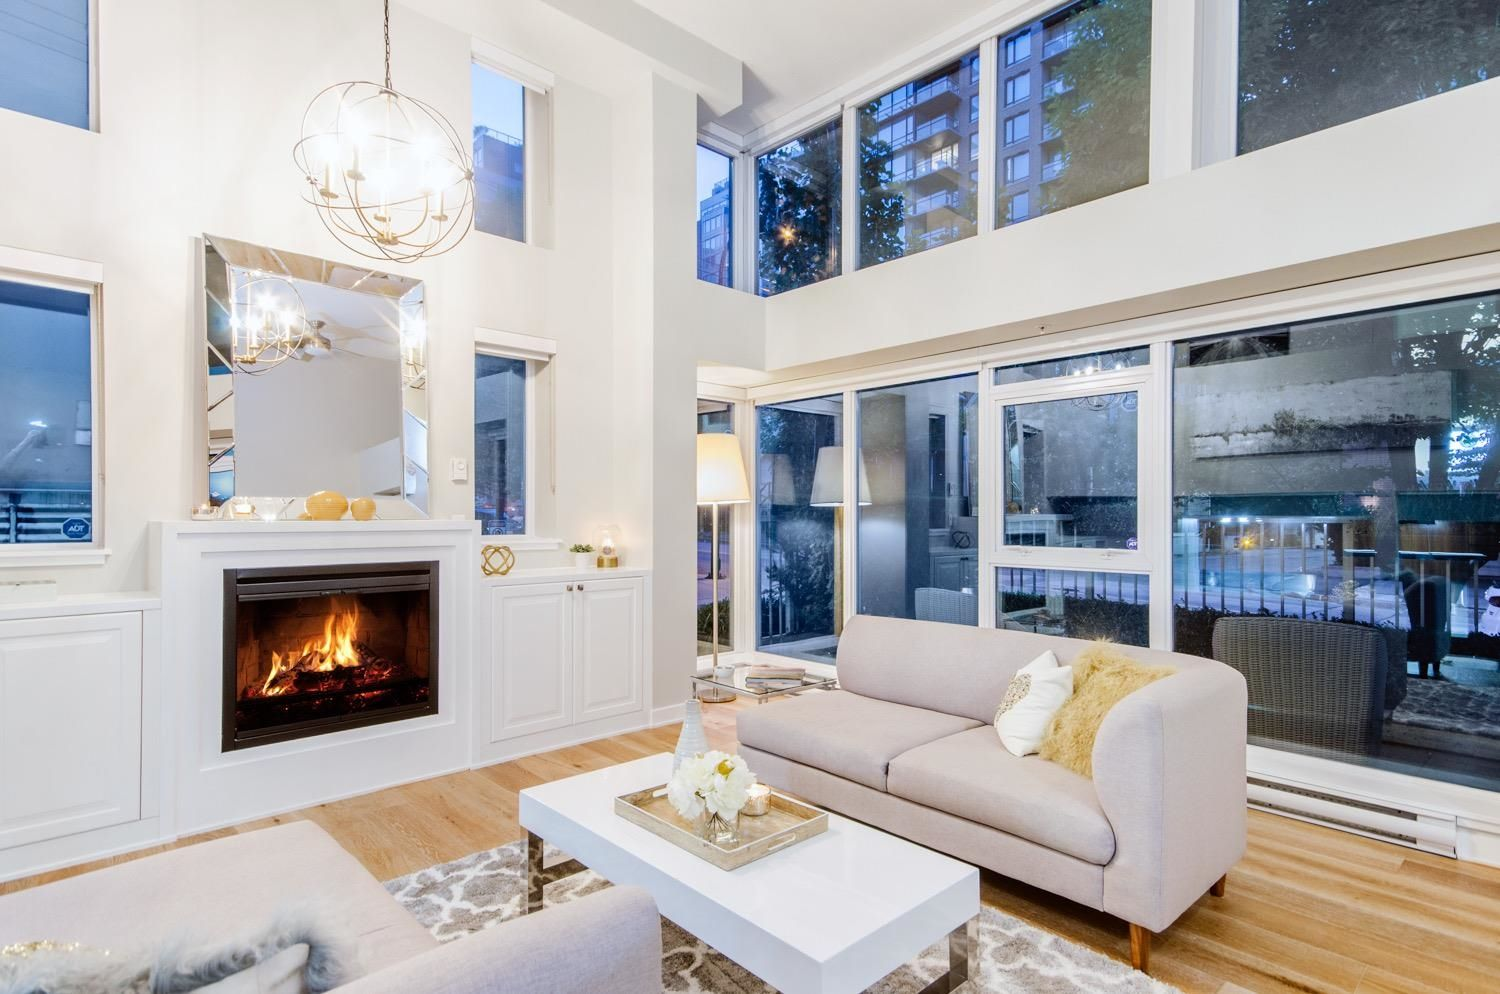 Main Photo: 428 HELMCKEN STREET in Vancouver: Yaletown Townhouse for sale (Vancouver West)  : MLS®# R2622159